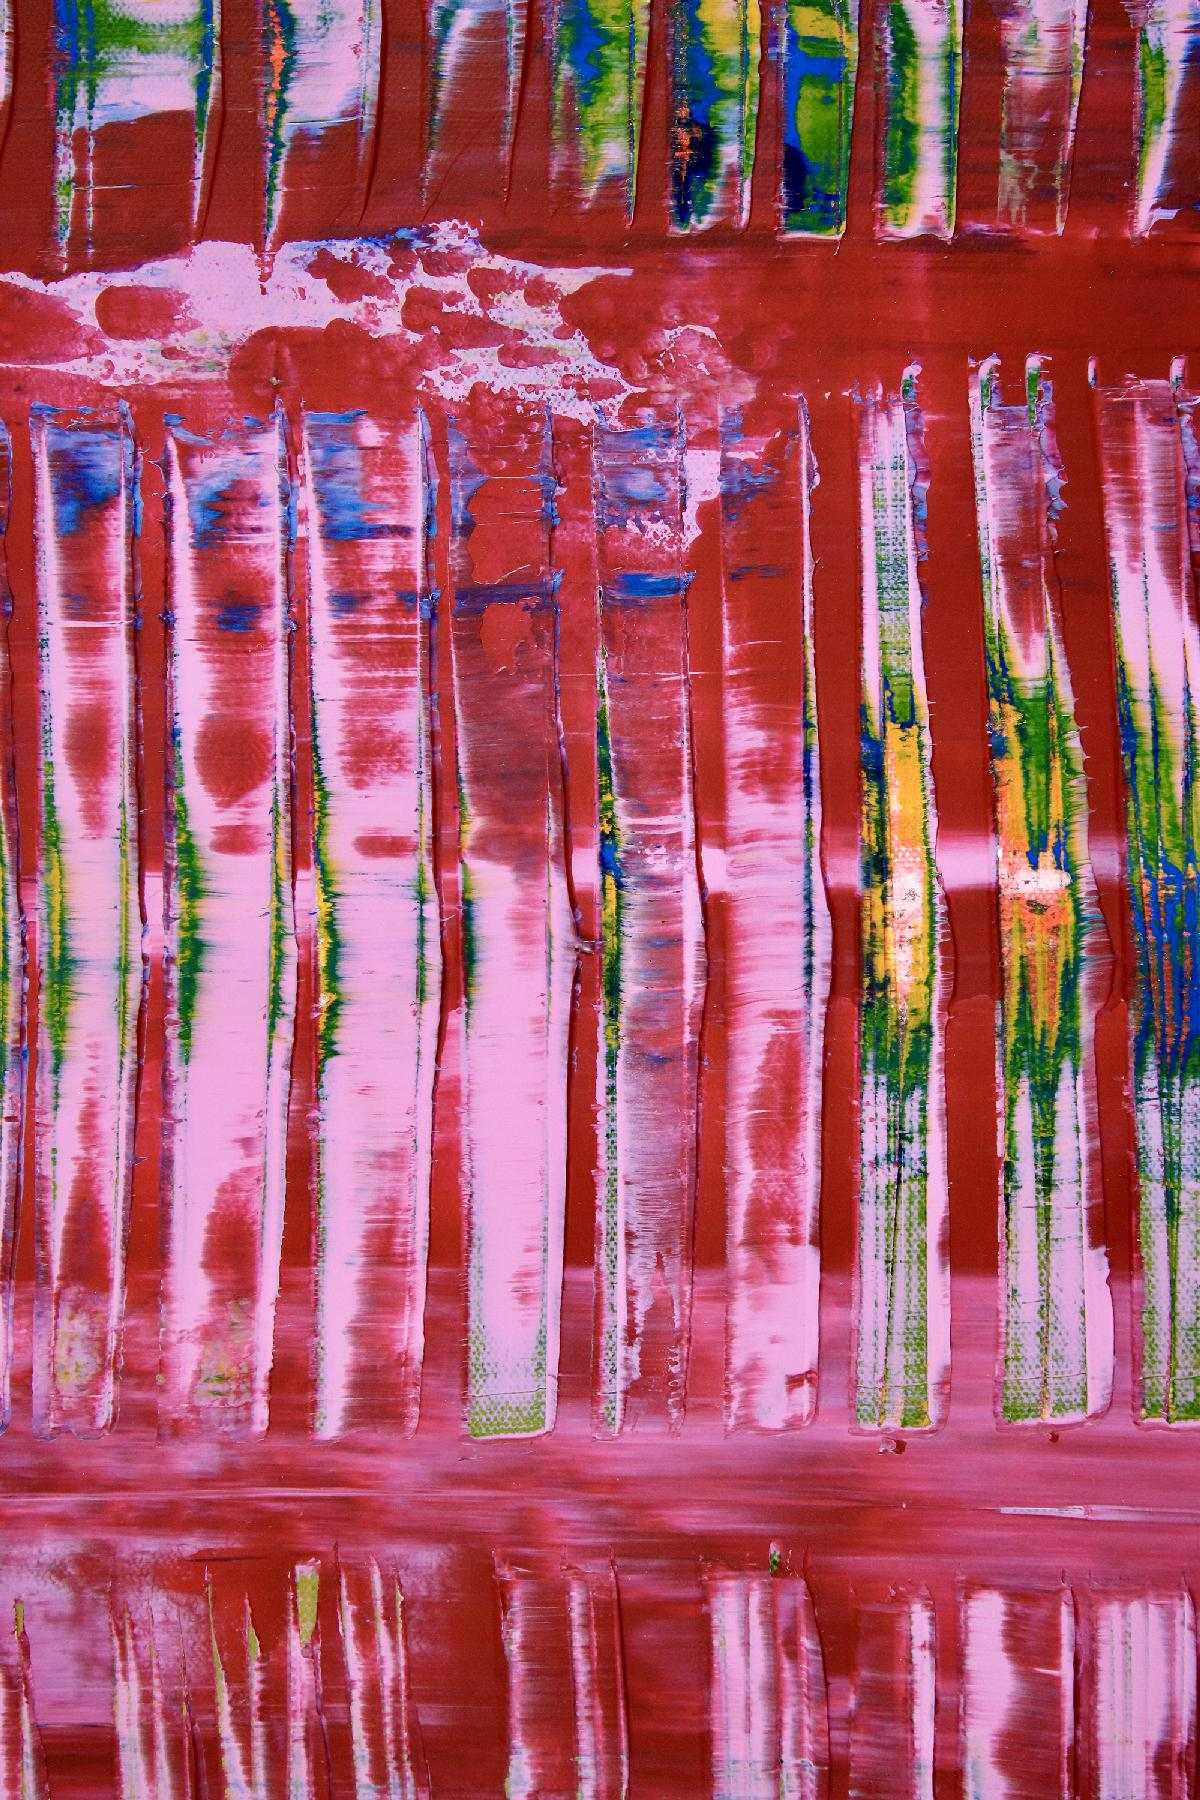 Detail View - Full Canvas View - Pink Takeover (Blue Lights) 2020 by Nestor Toro